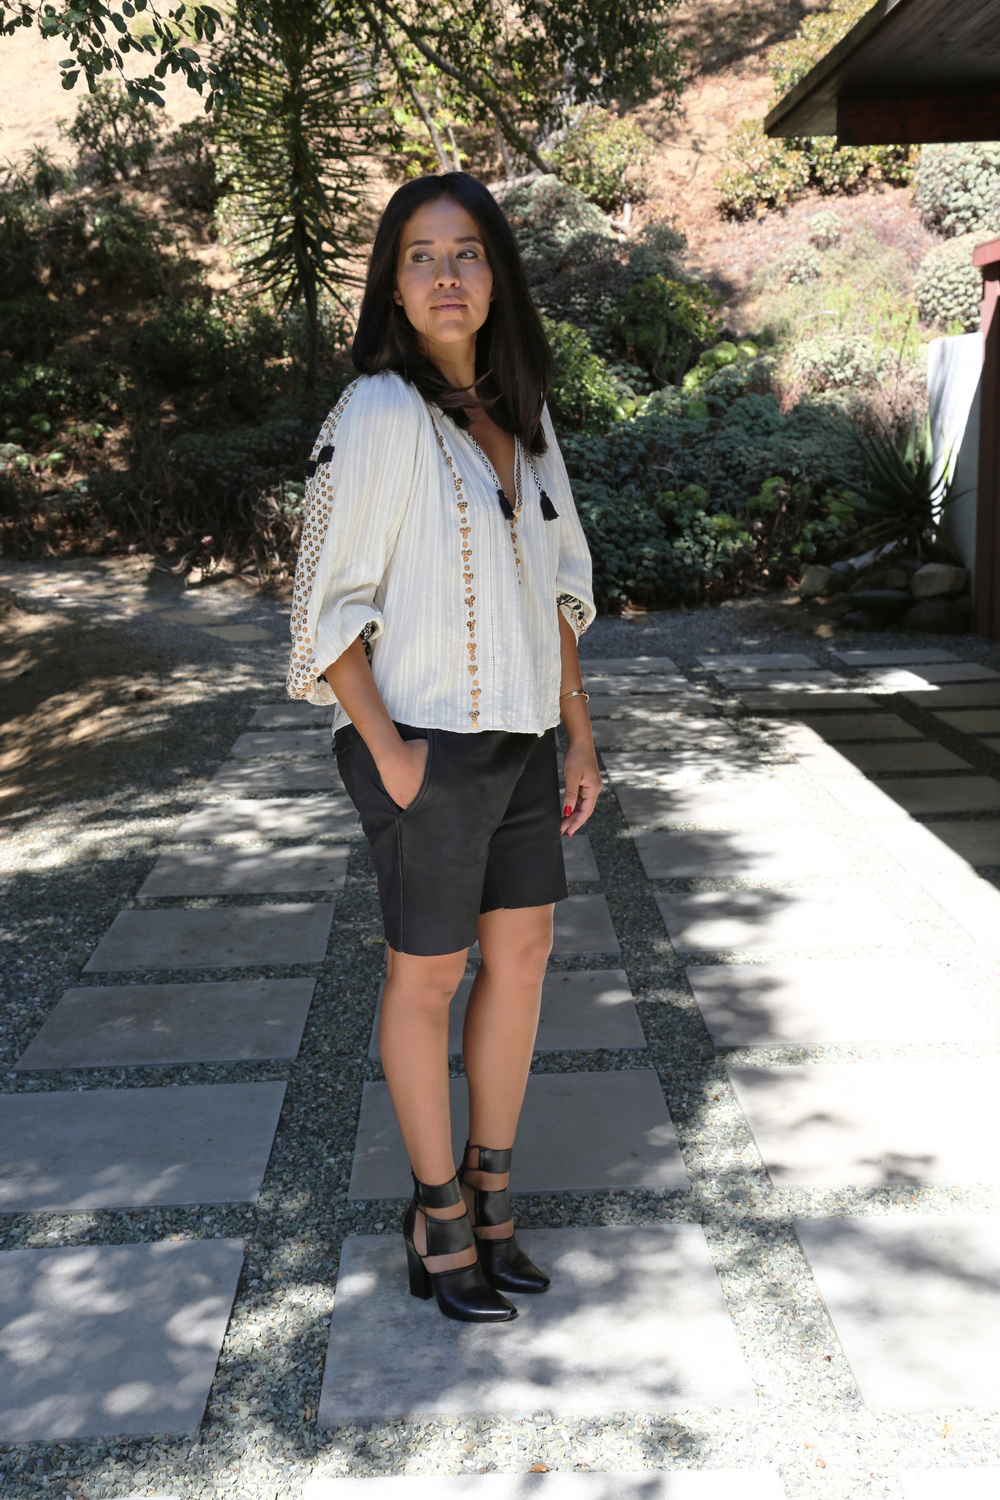 VANESSA-BELETIC-STYLE-BOHO-LEATHER-SHORTS-LOS-ANGELES.JPG